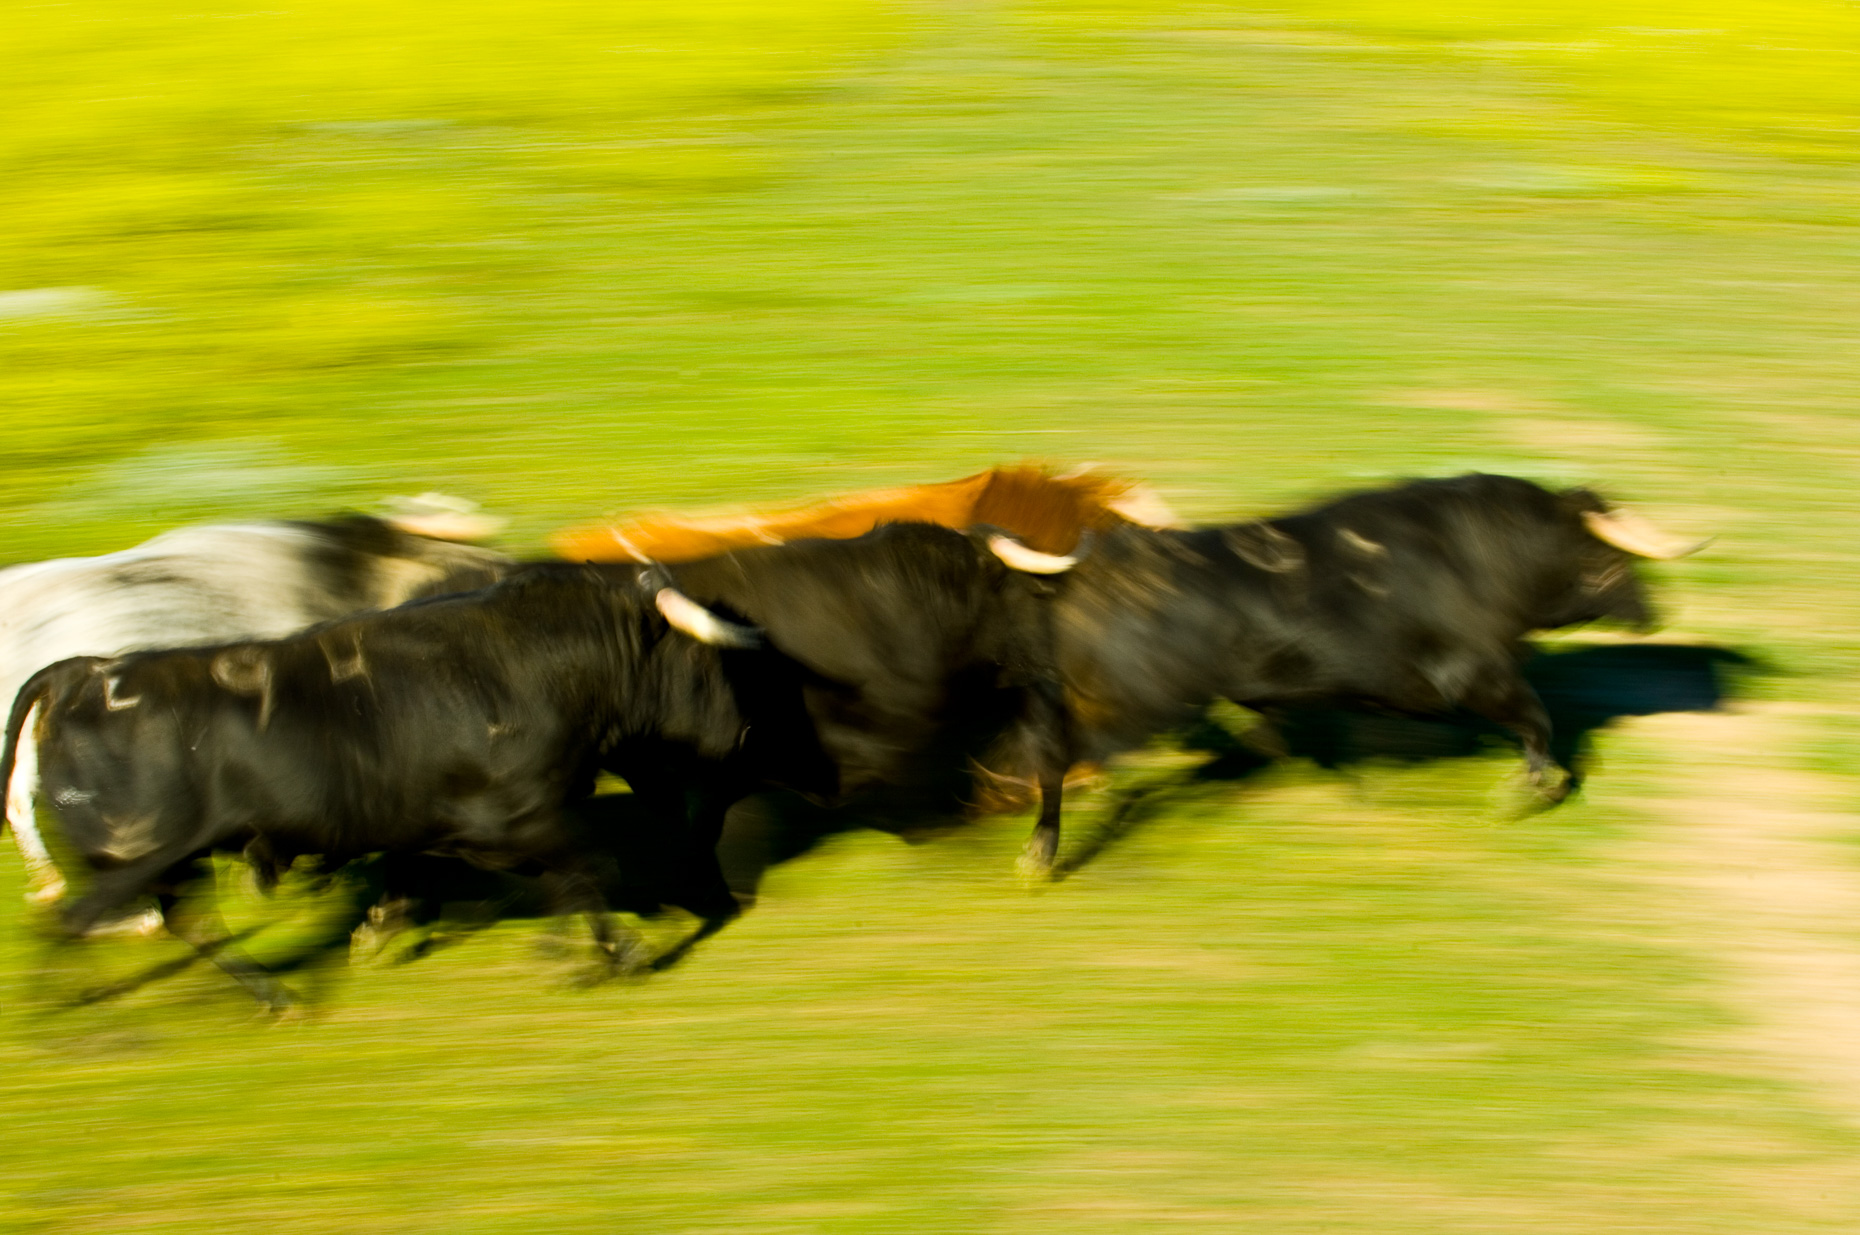 Brave bulls in movement